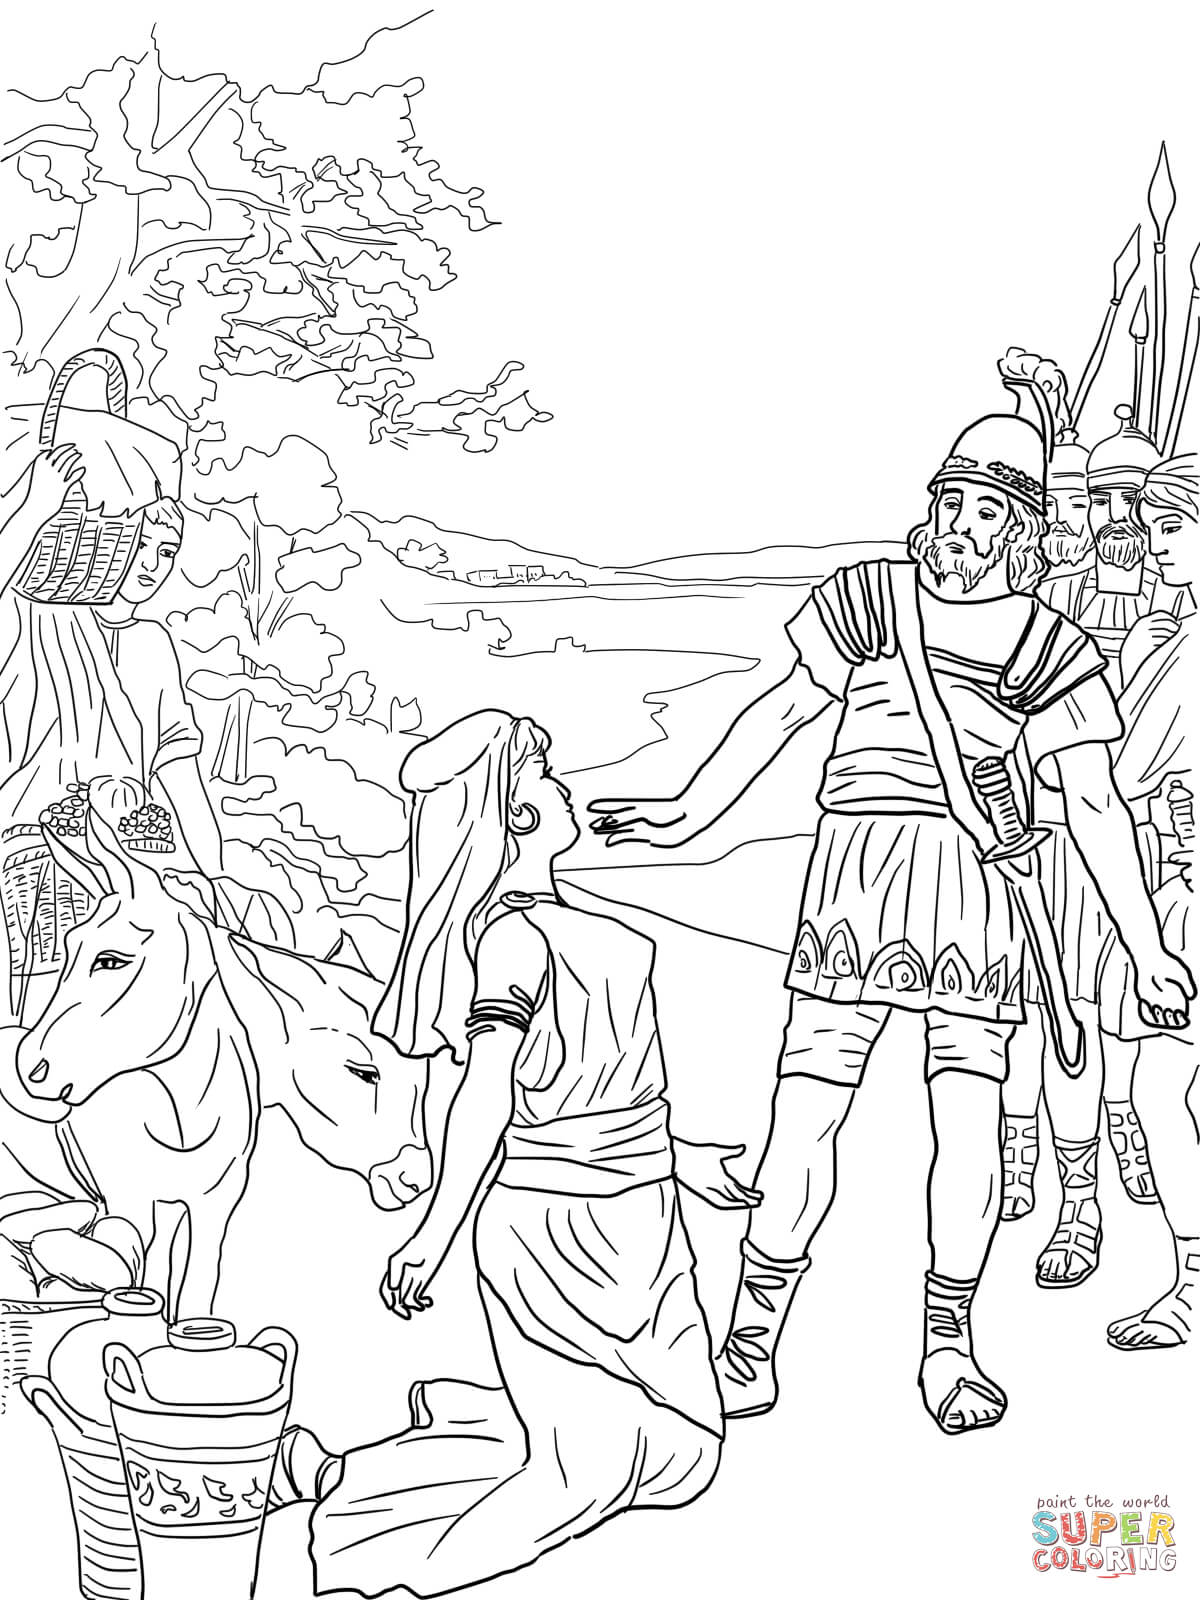 David and abigail coloring page free printable coloring pages